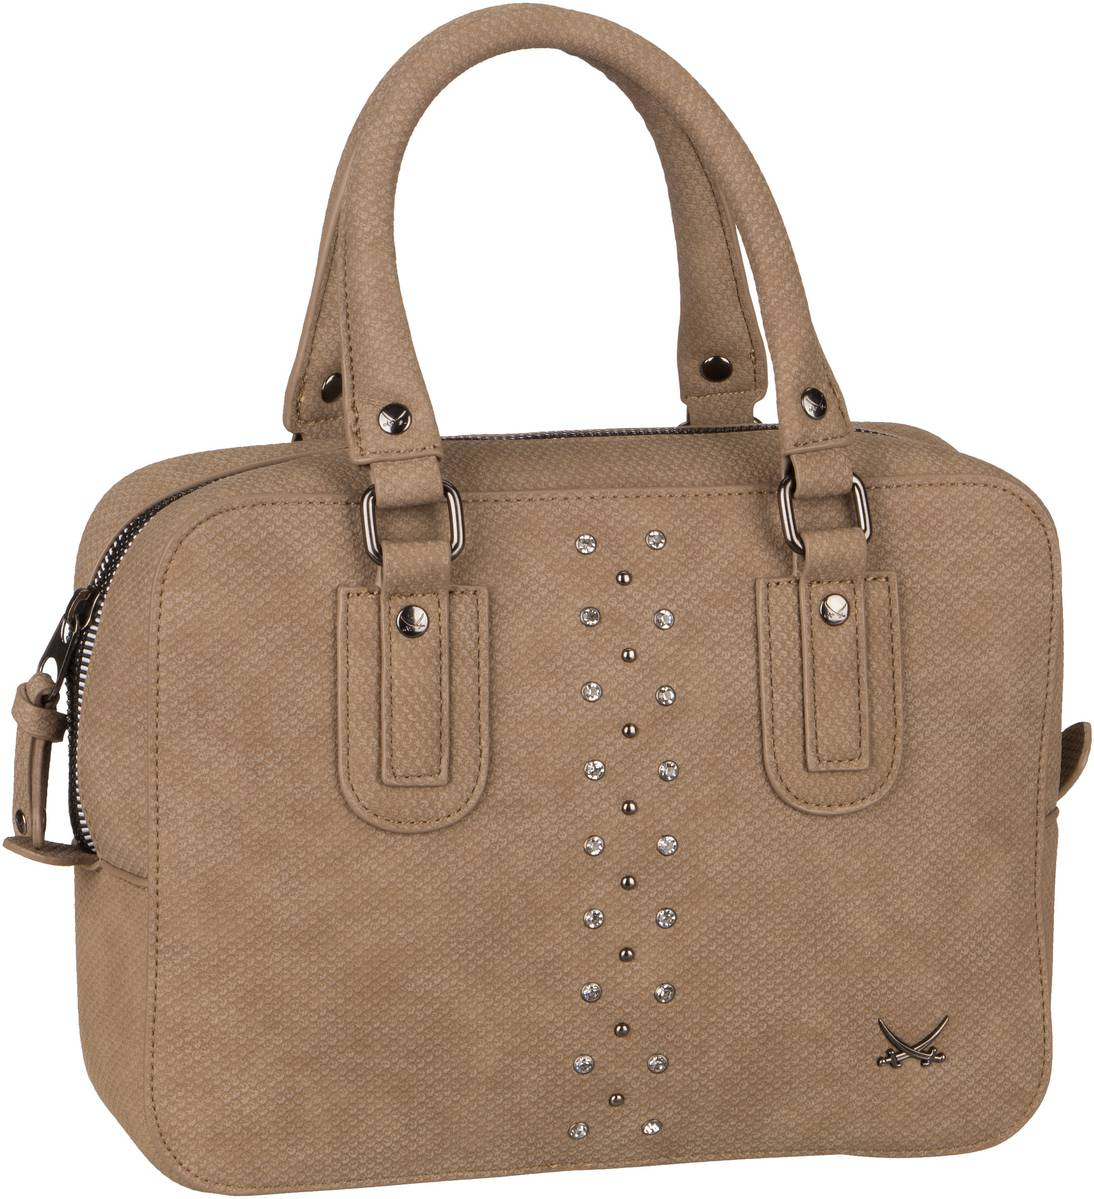 Handtasche Bowling Bag 1320 Taupe